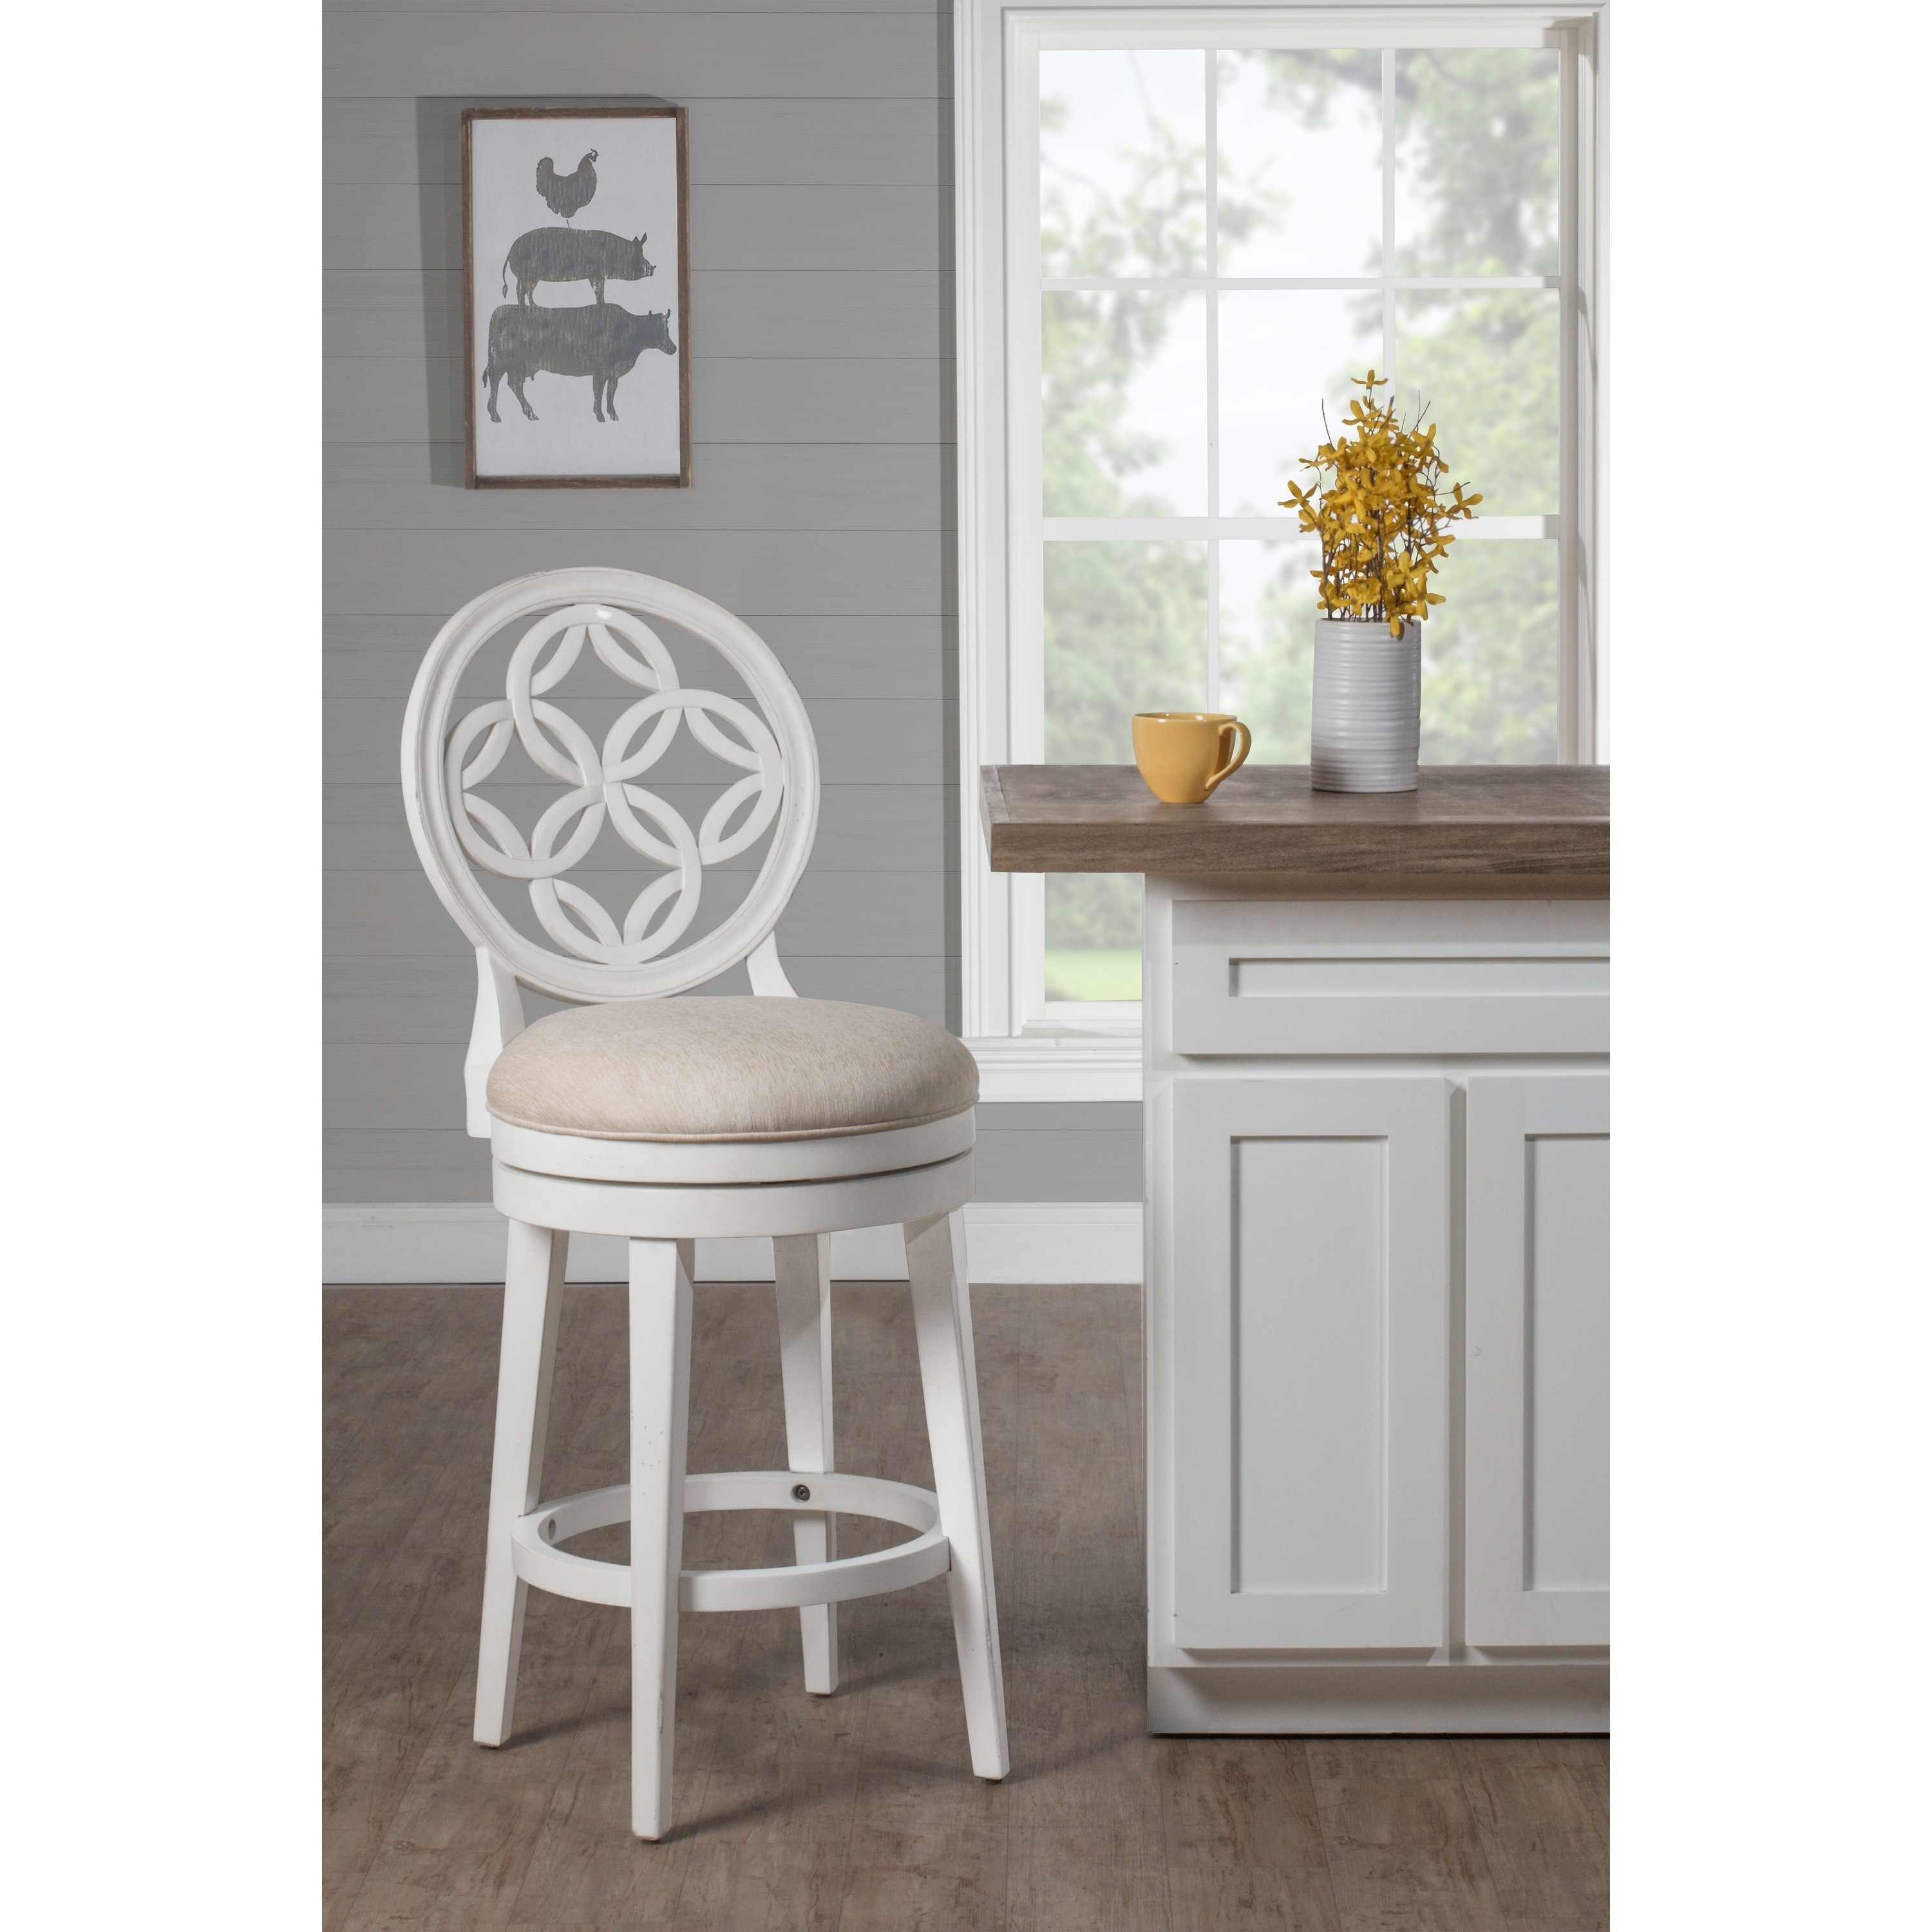 Sensational Copper Grove Cholet White Wood Fabric Upholstered Counter Height Swivel Stool Ibusinesslaw Wood Chair Design Ideas Ibusinesslaworg